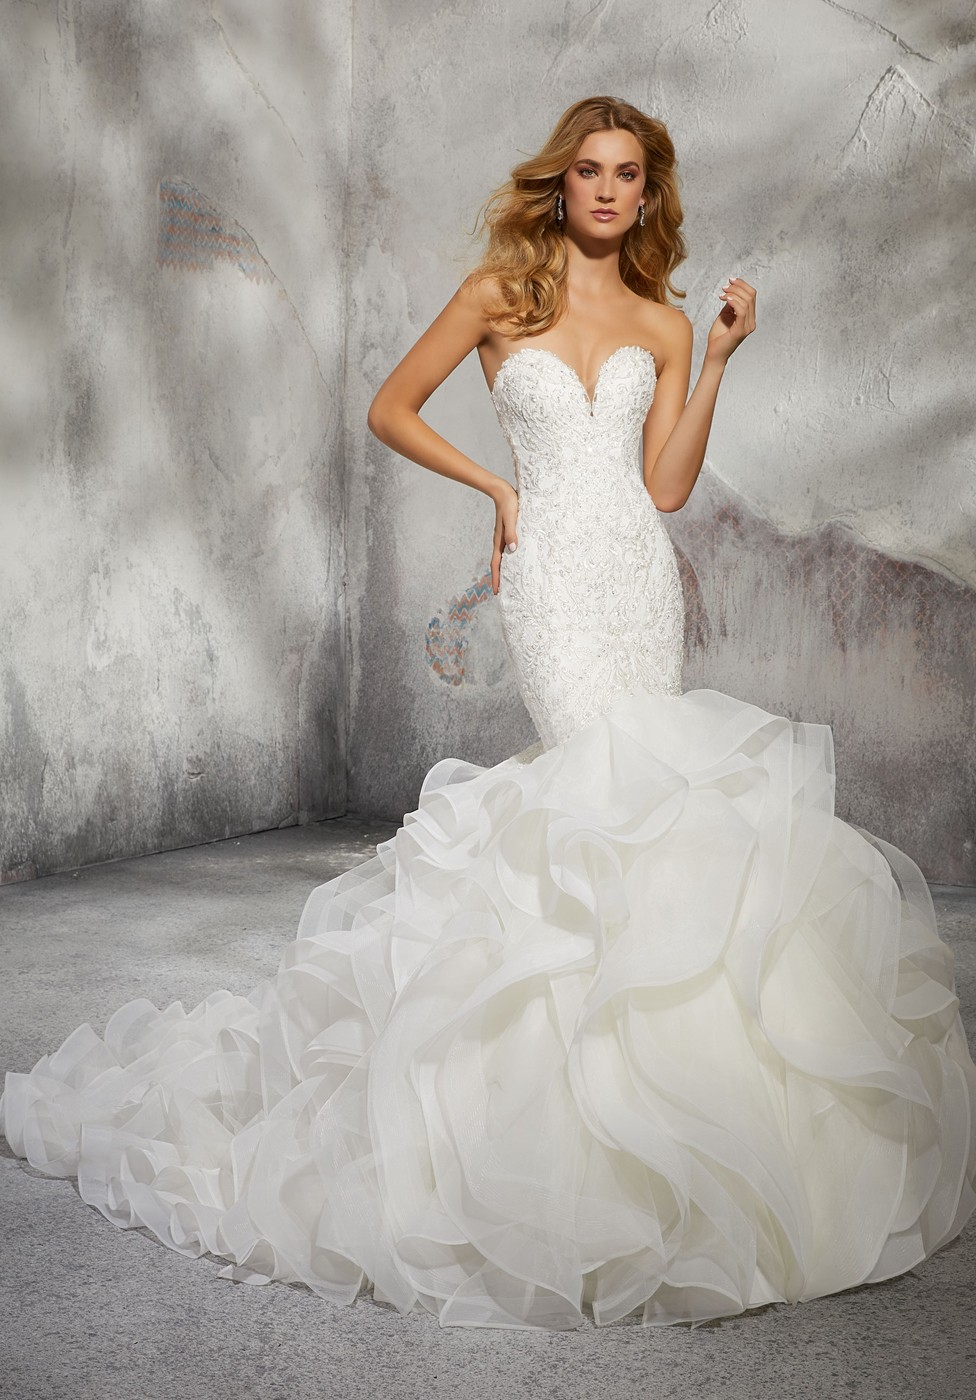 153683ccbd Mori Lee 8282 Leona Dress - MadameBridal.com